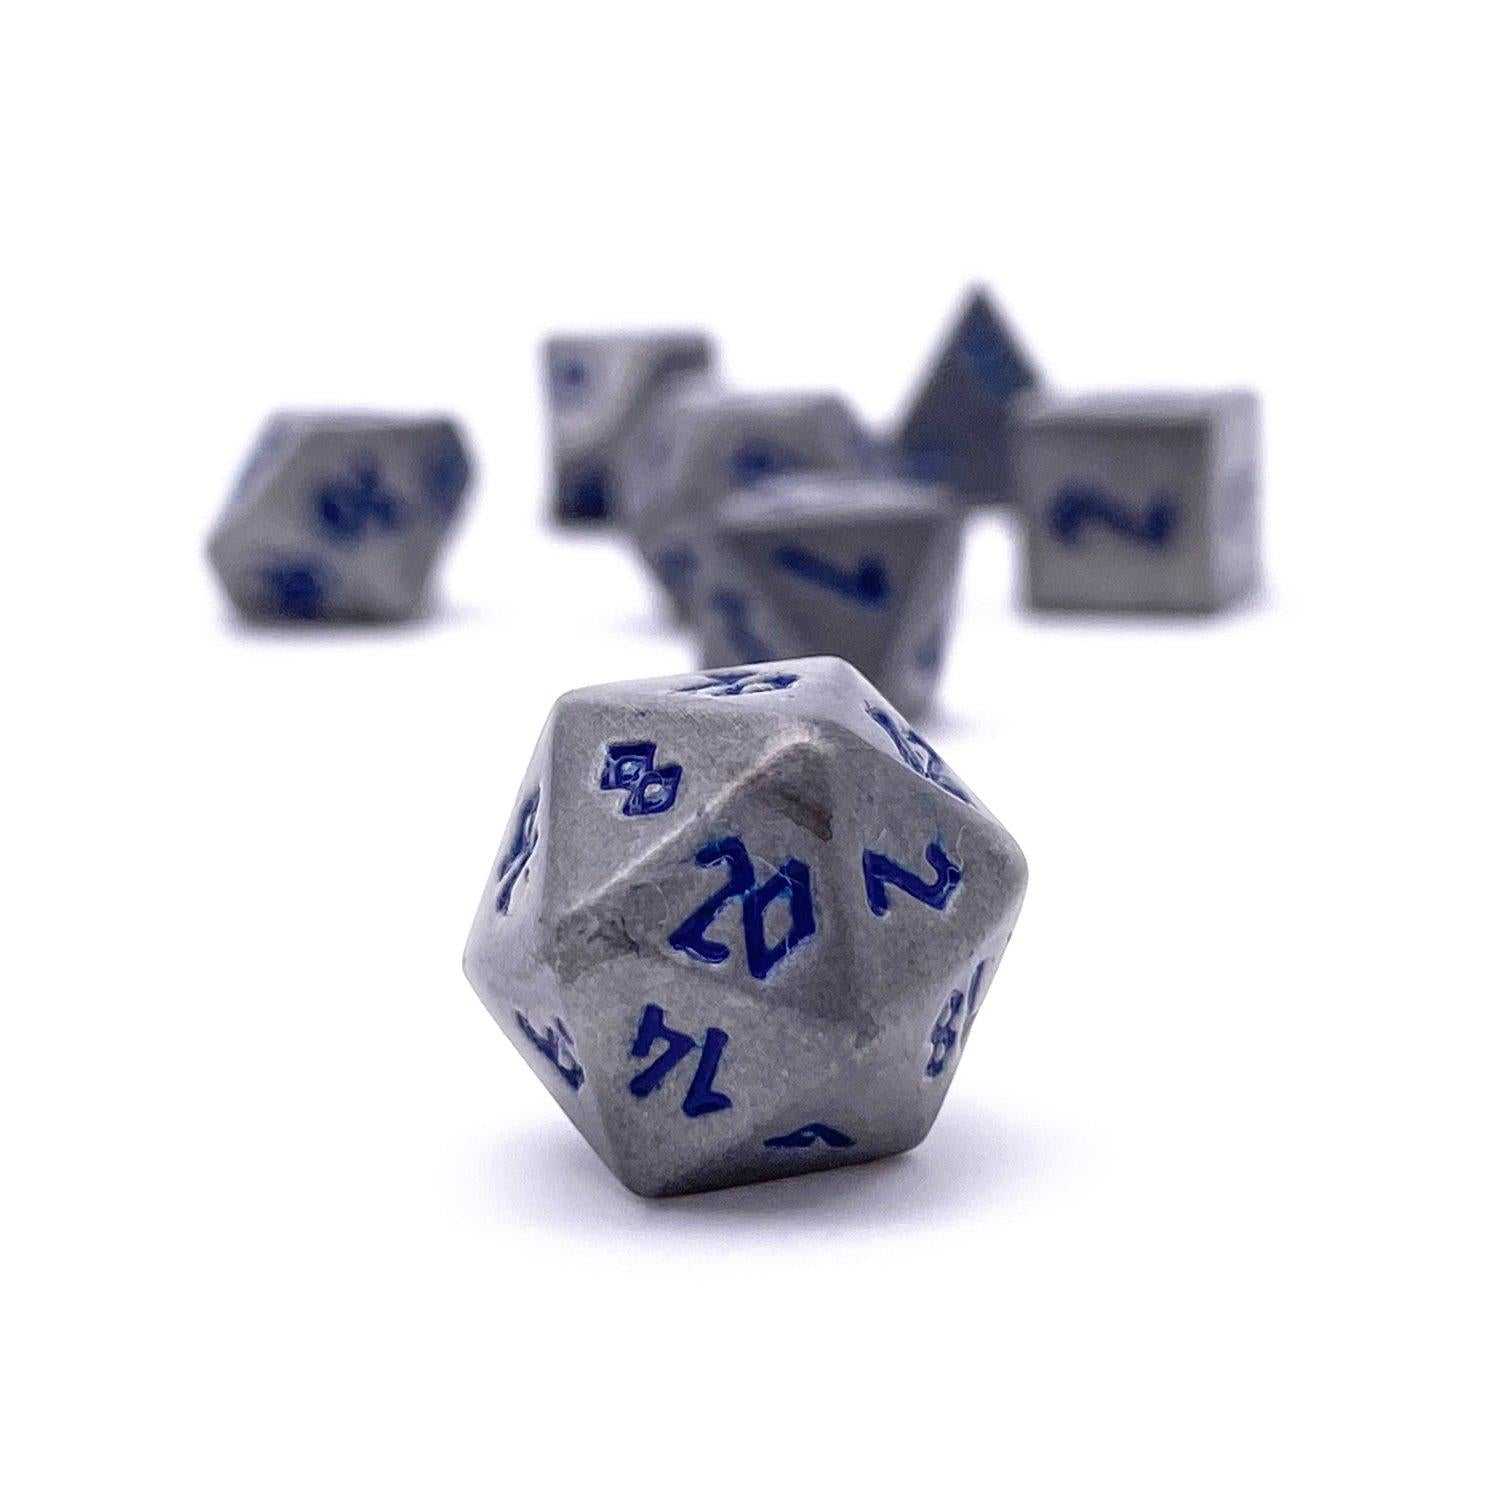 Atomic Metal Pebble ™ Dice - 10mm Alloy Mini Polyhedral Dice Set